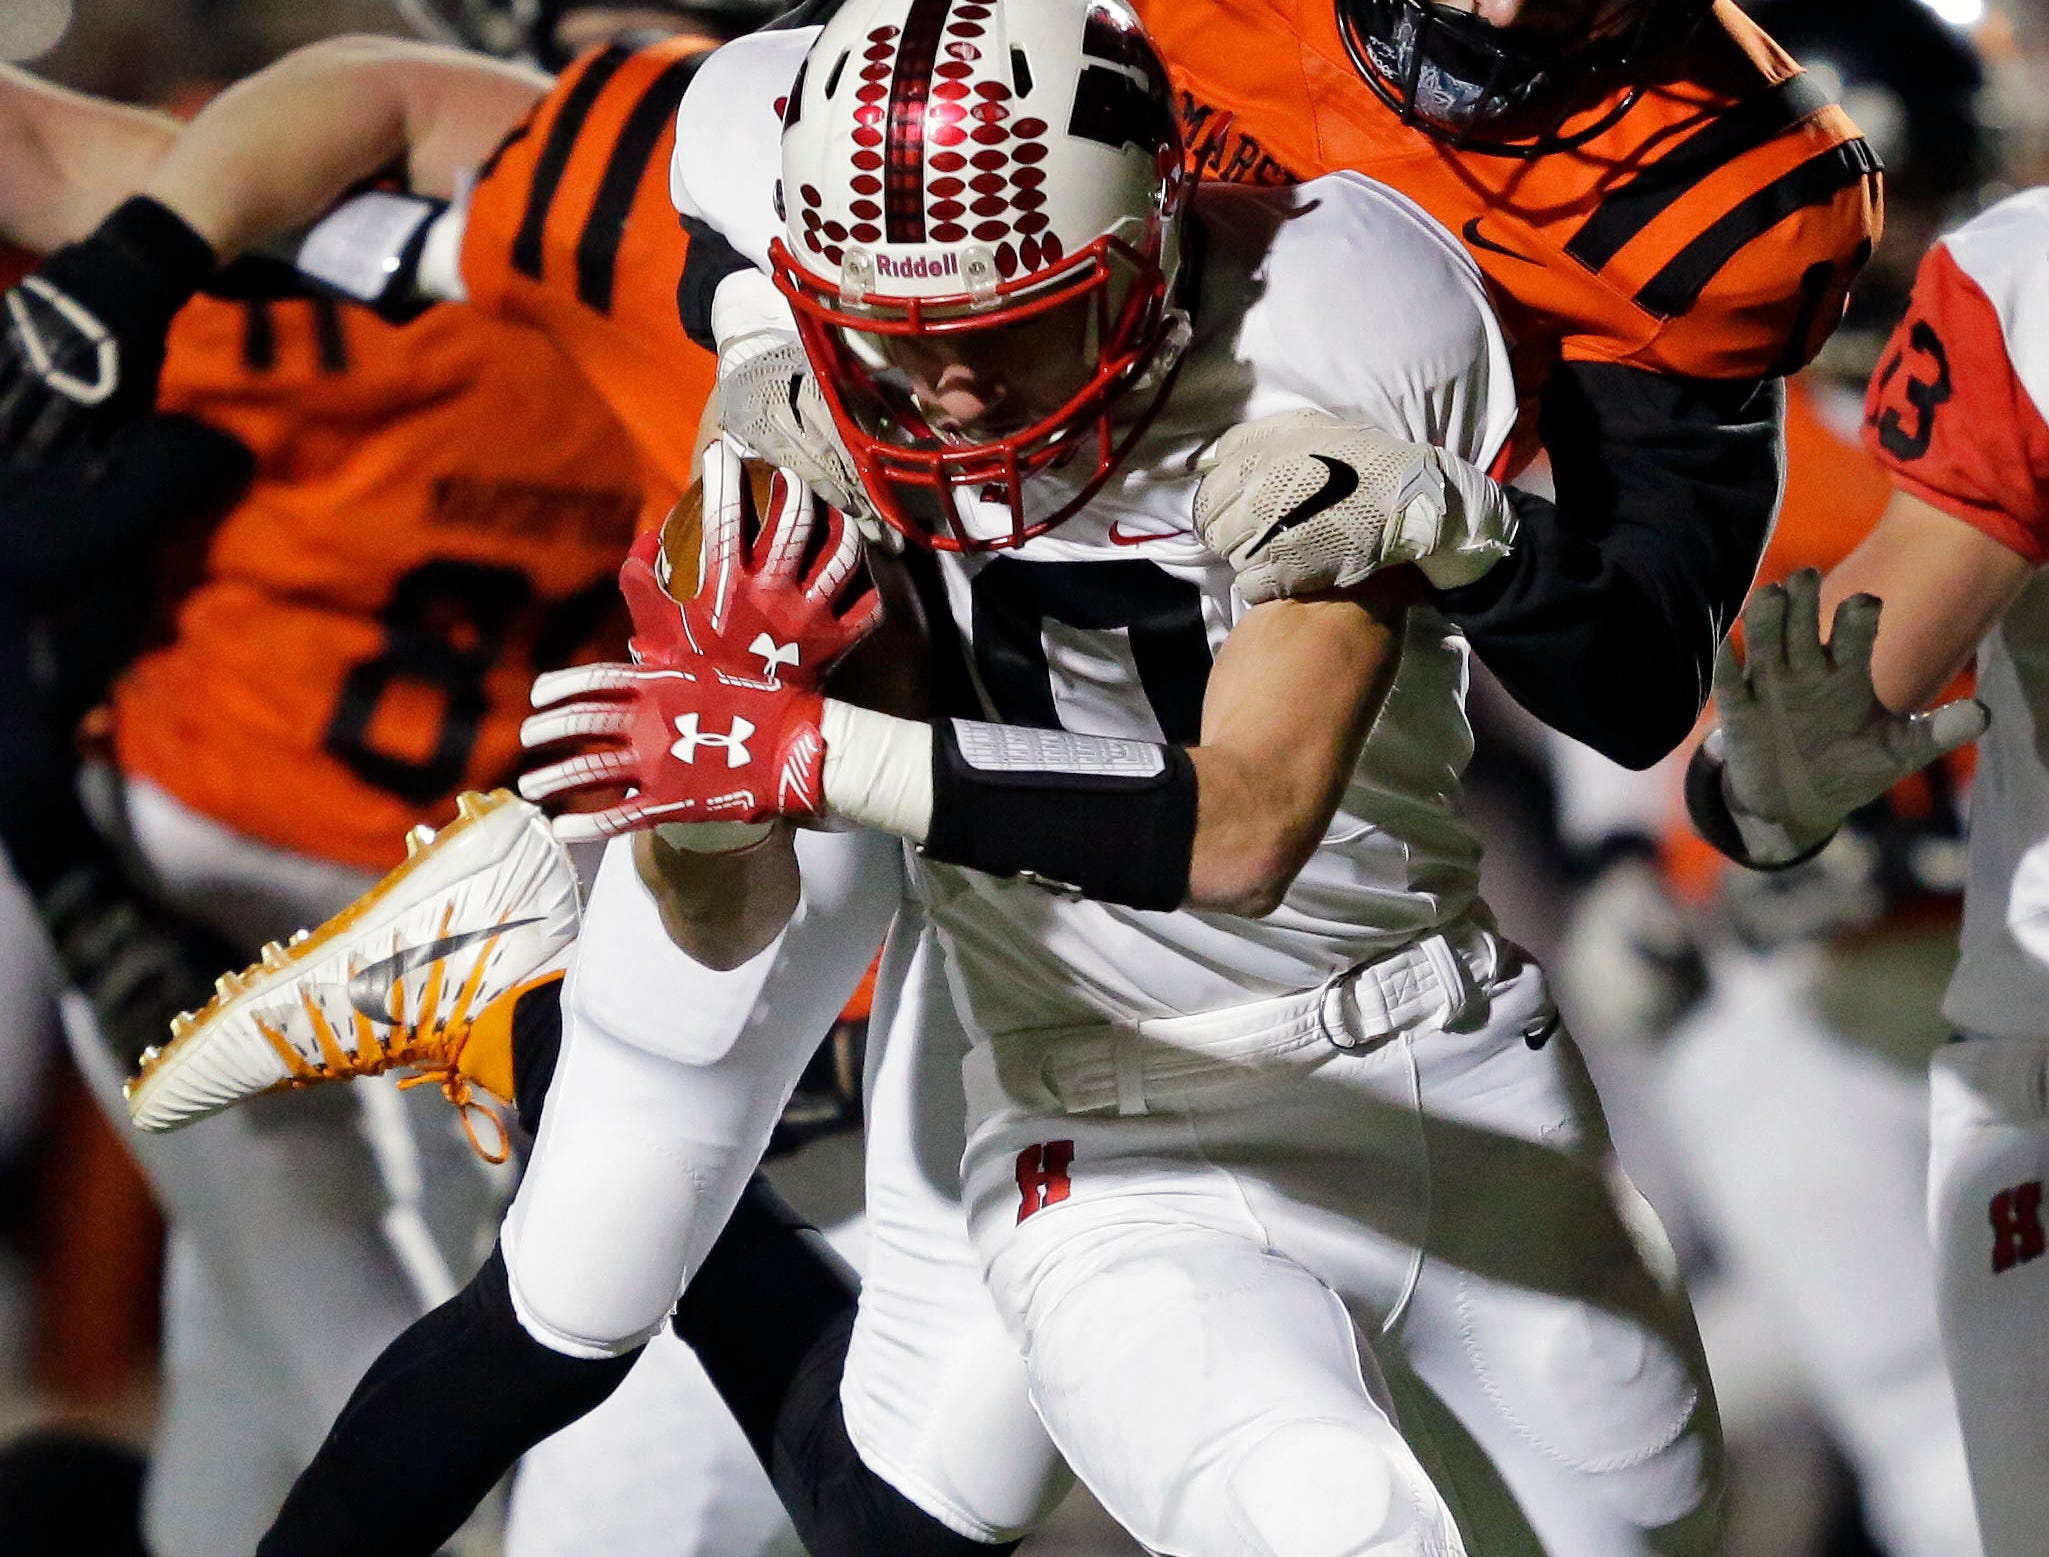 Jared Schneider of Homestead is tackled by Joey Goettl of Marshfield in a WIAA Division 2 state semifinal football game Friday, November 9, 2018, at Calder Stadium in Menasha, Wis.Ron Page/USA TODAY NETWORK-Wisconsin